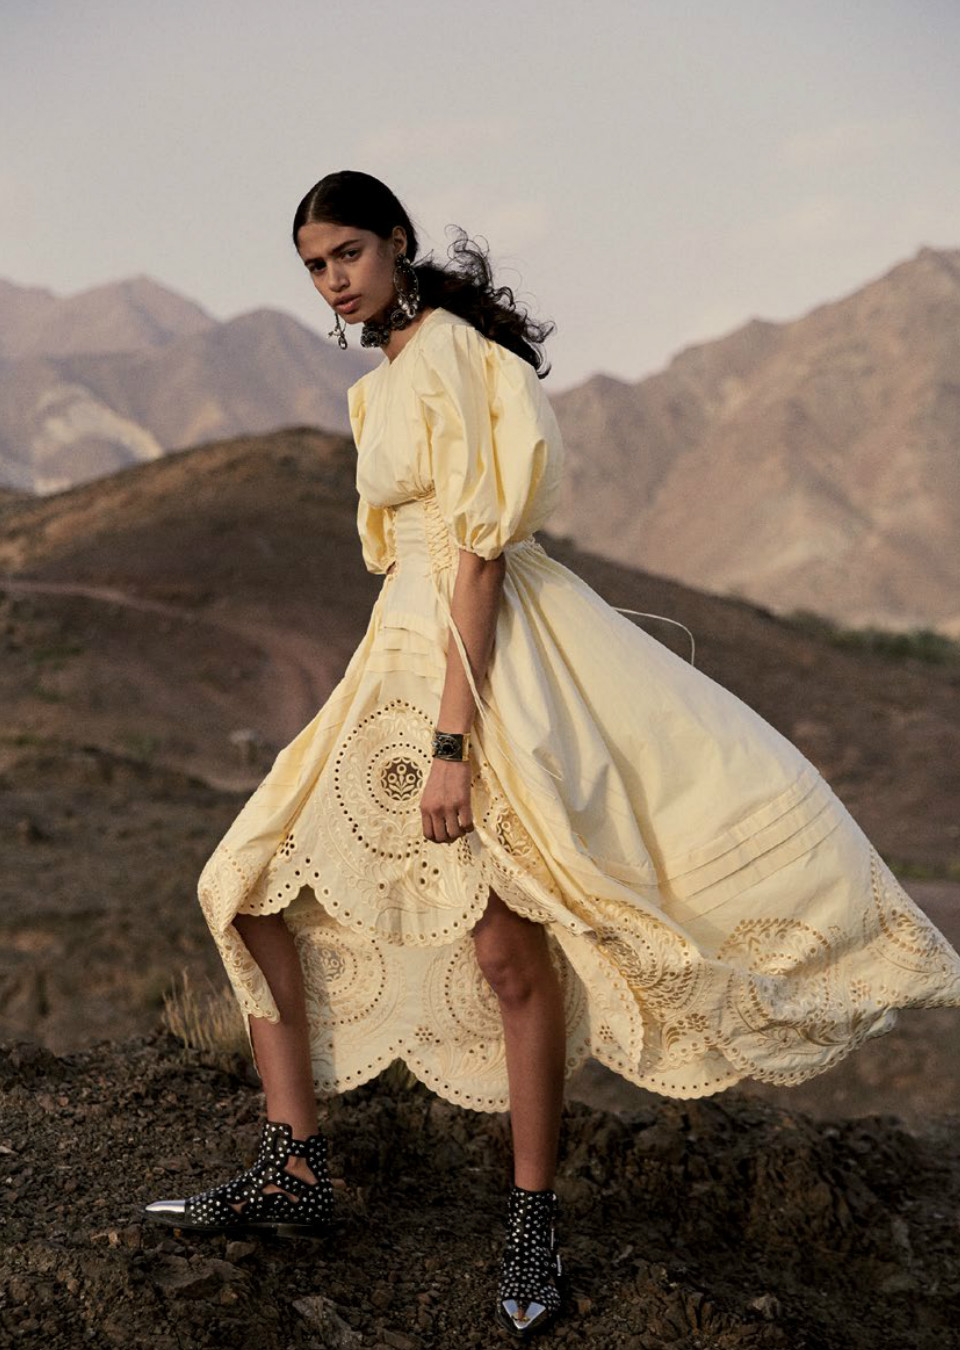 Malika-El-Maslouhi-Vogue-Arabia-April-2019- (10).JPG